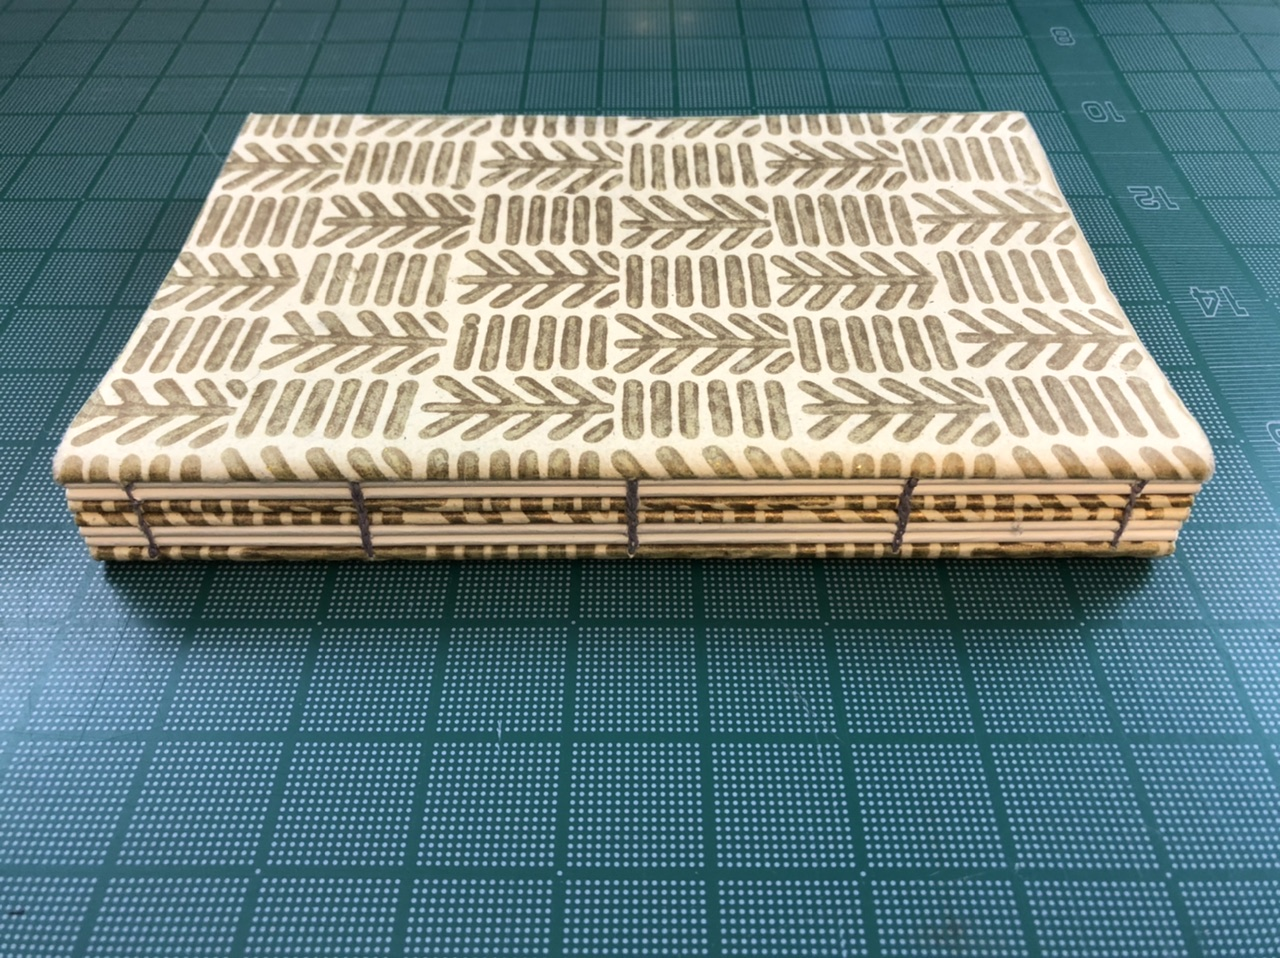 Patterned coptic notebook placed on a cutting mat.